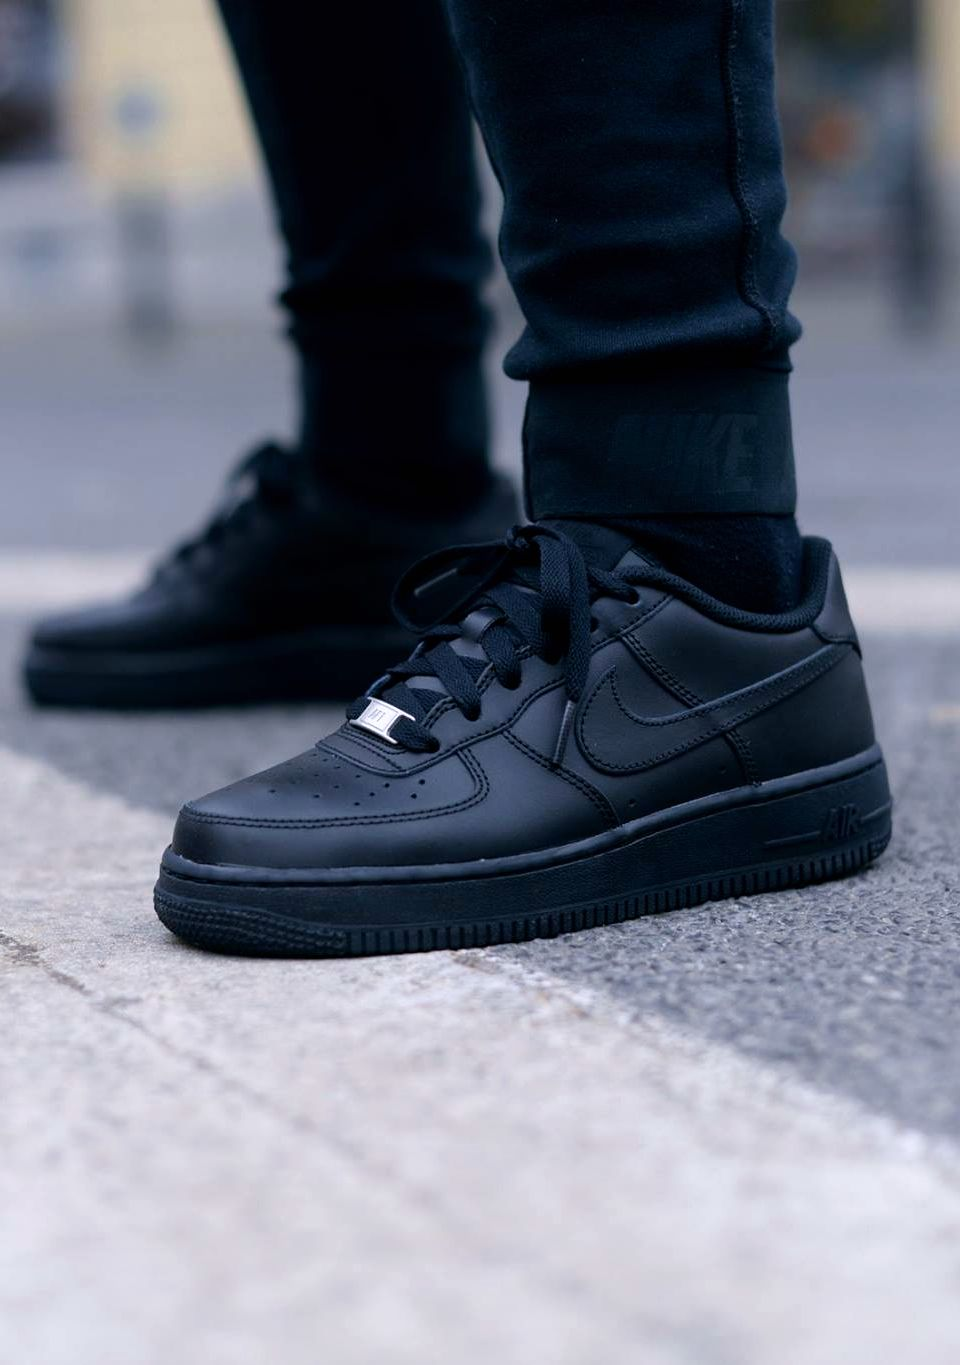 competitive price 9ee5c c14ee Nike Air Force 1  All Black  via CHMIELNA 20Buy it   CHMIELNA 20   Nike US    Finishline